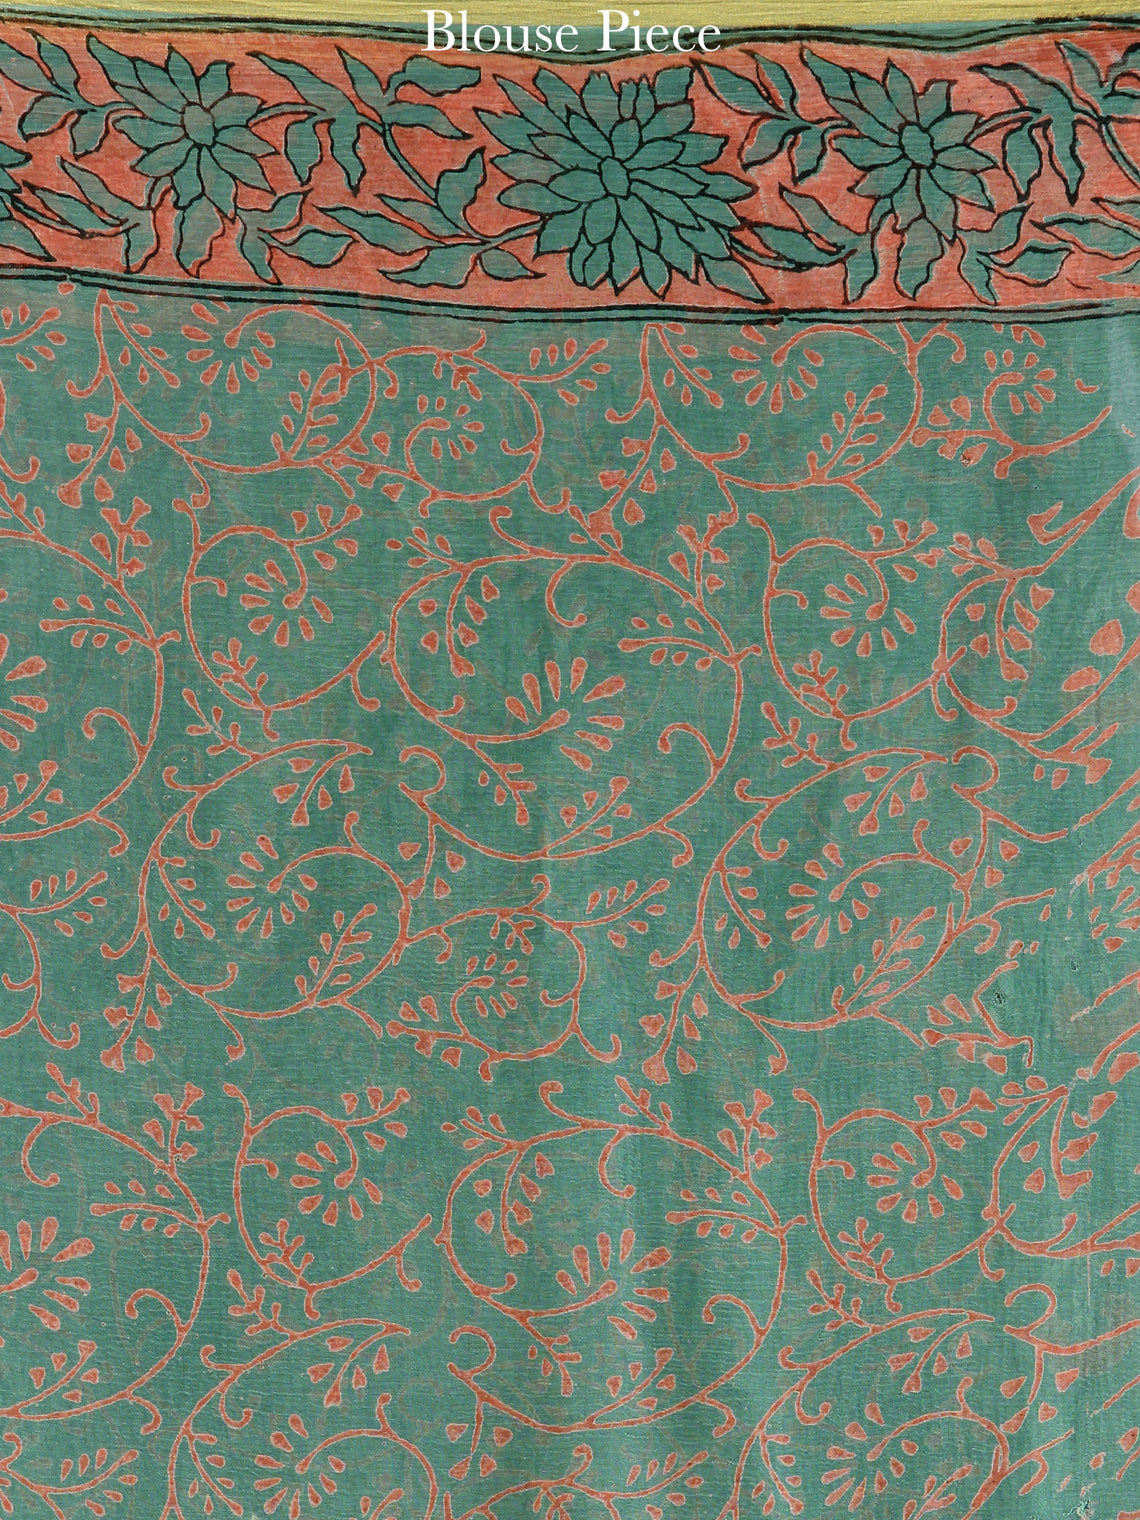 Green Coral Hand Block Printed Chiffon Saree with Zari Border - S031704596